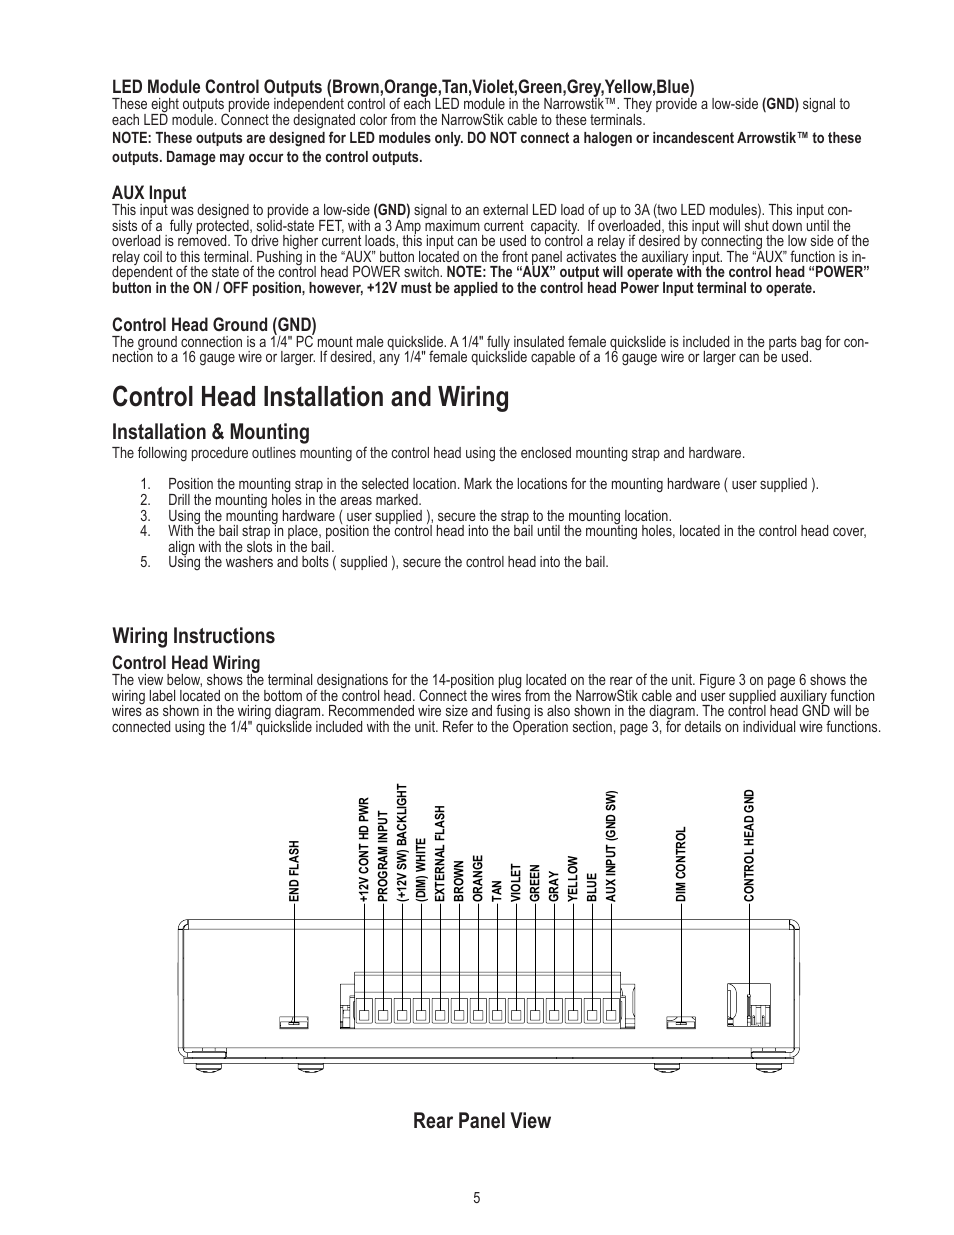 code 3 tricore narrowstik controller page5 control head installation and wiring, installation & mounting code 3 arrowstick wiring diagram at virtualis.co